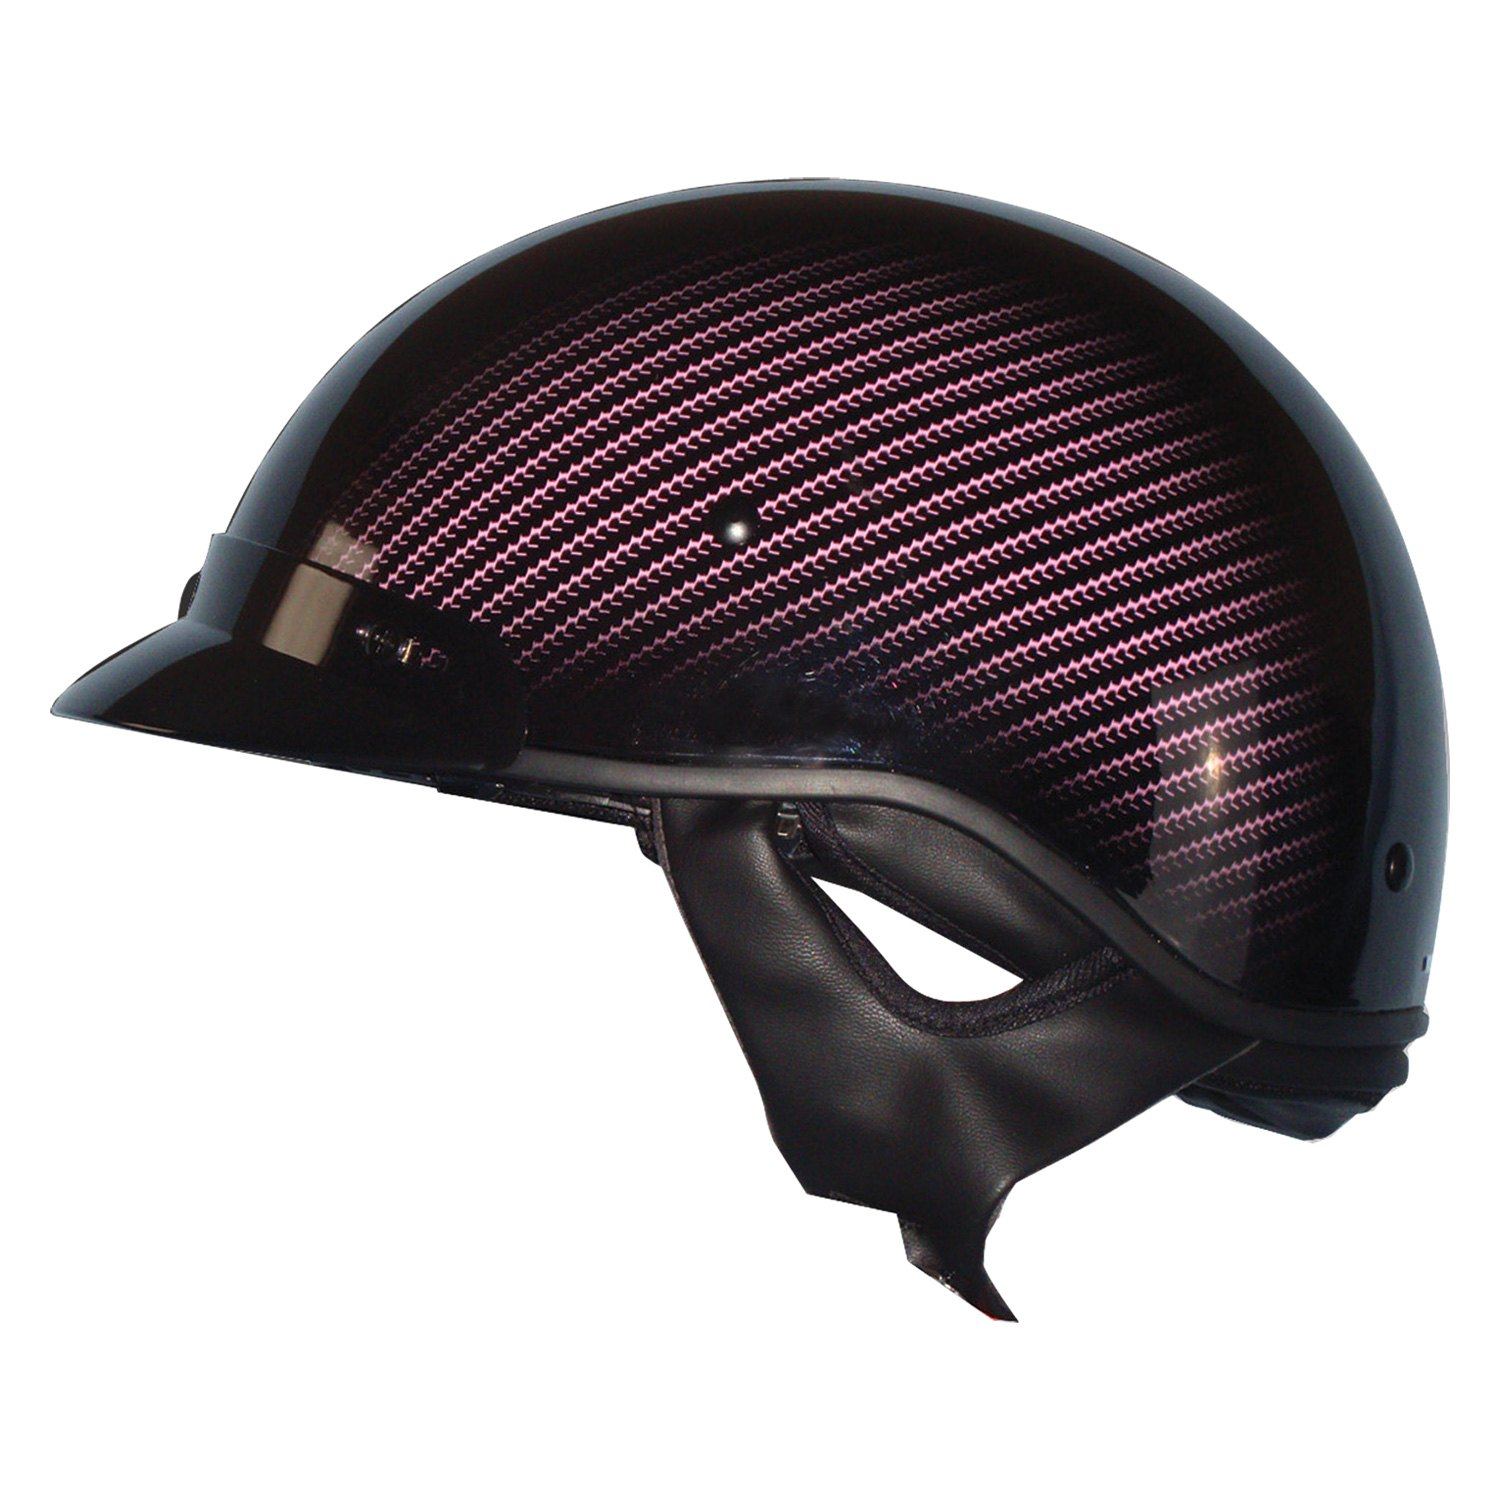 zoan carbon fiber helmet review